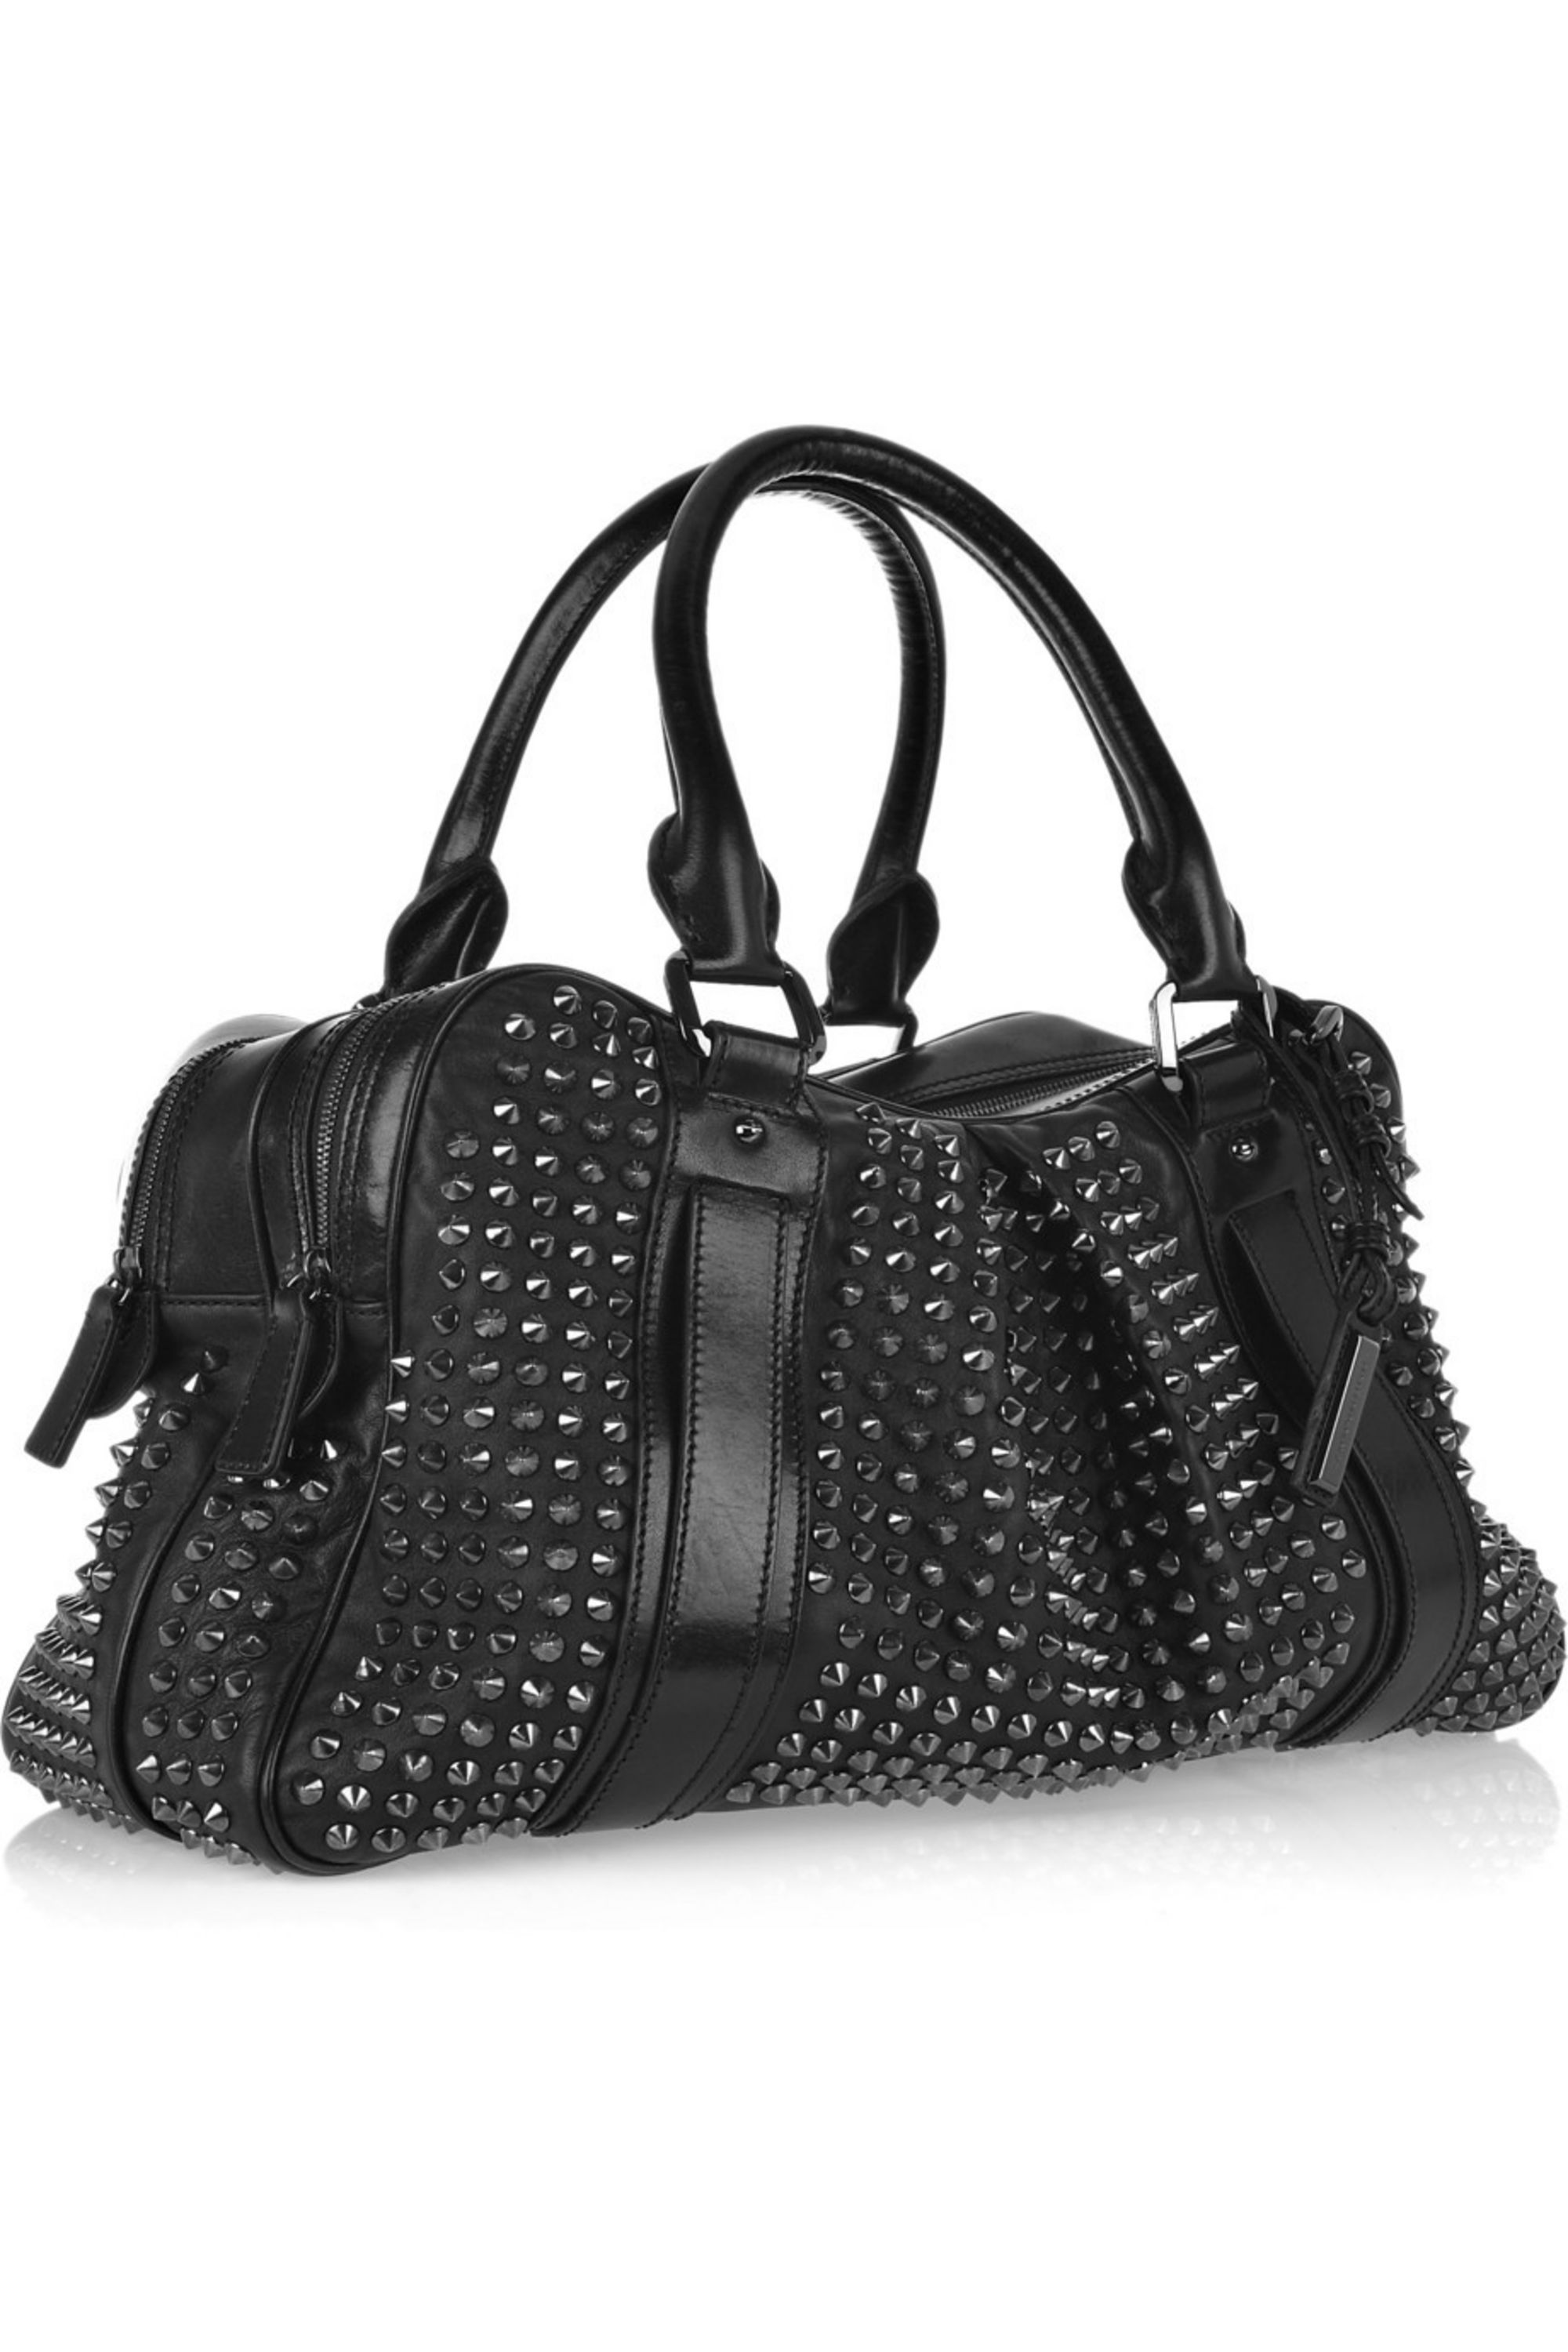 Burberry Shoes & Accessories Knight studded leather bag